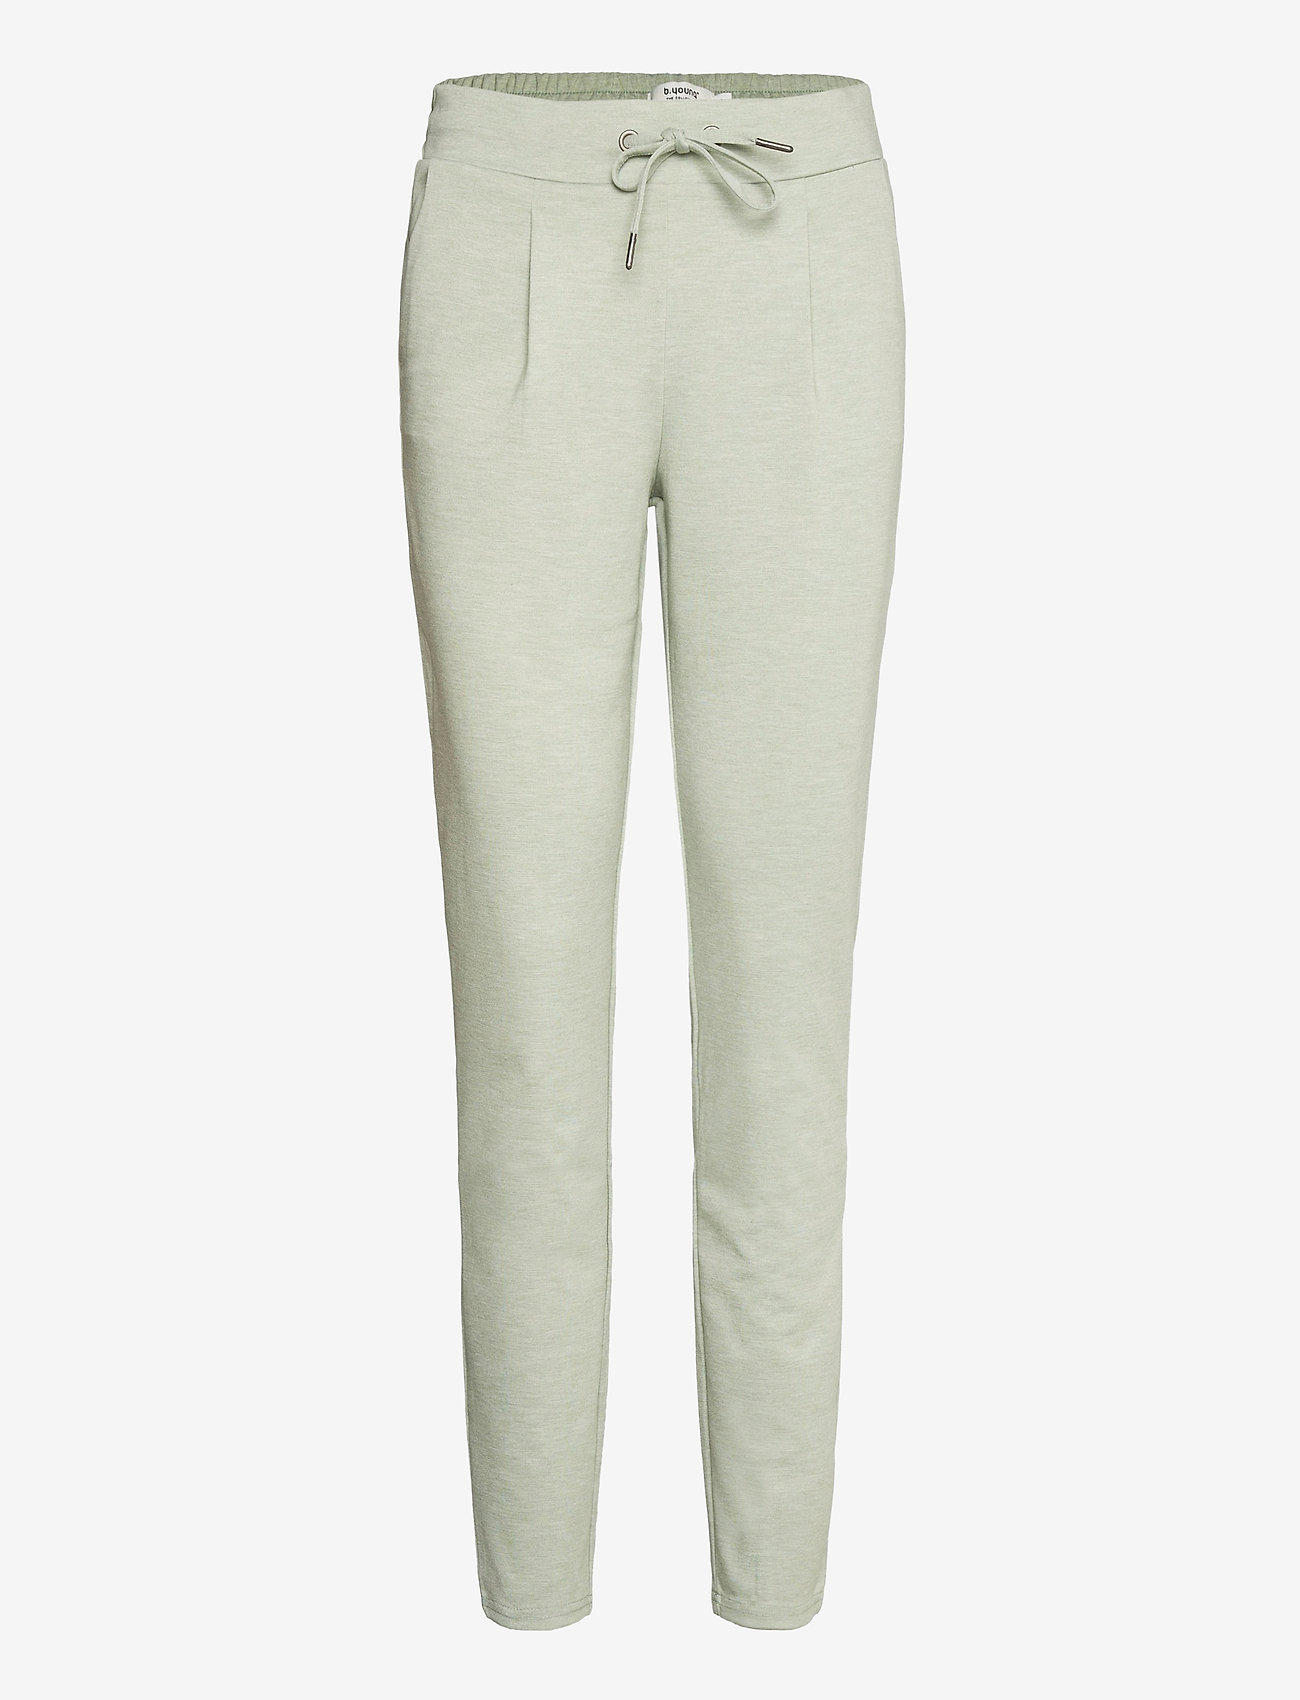 b.young - Rizetta pants 2 - Jersey - slim fit trousers - iceberg green melange - 0